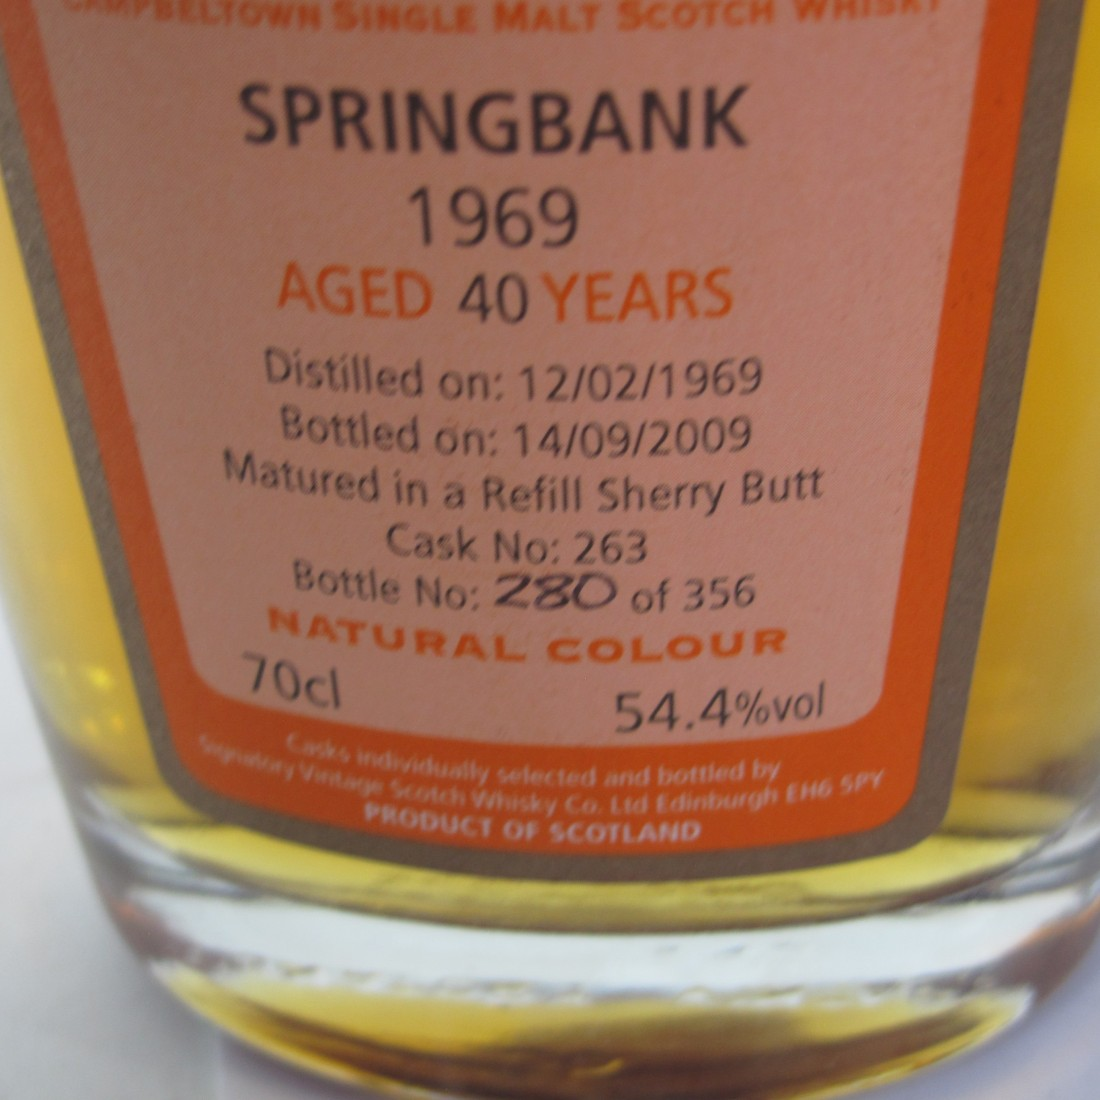 Springbank 1969 Signatory Vintage 40 Year Old / WhiskyBase #1 Rated